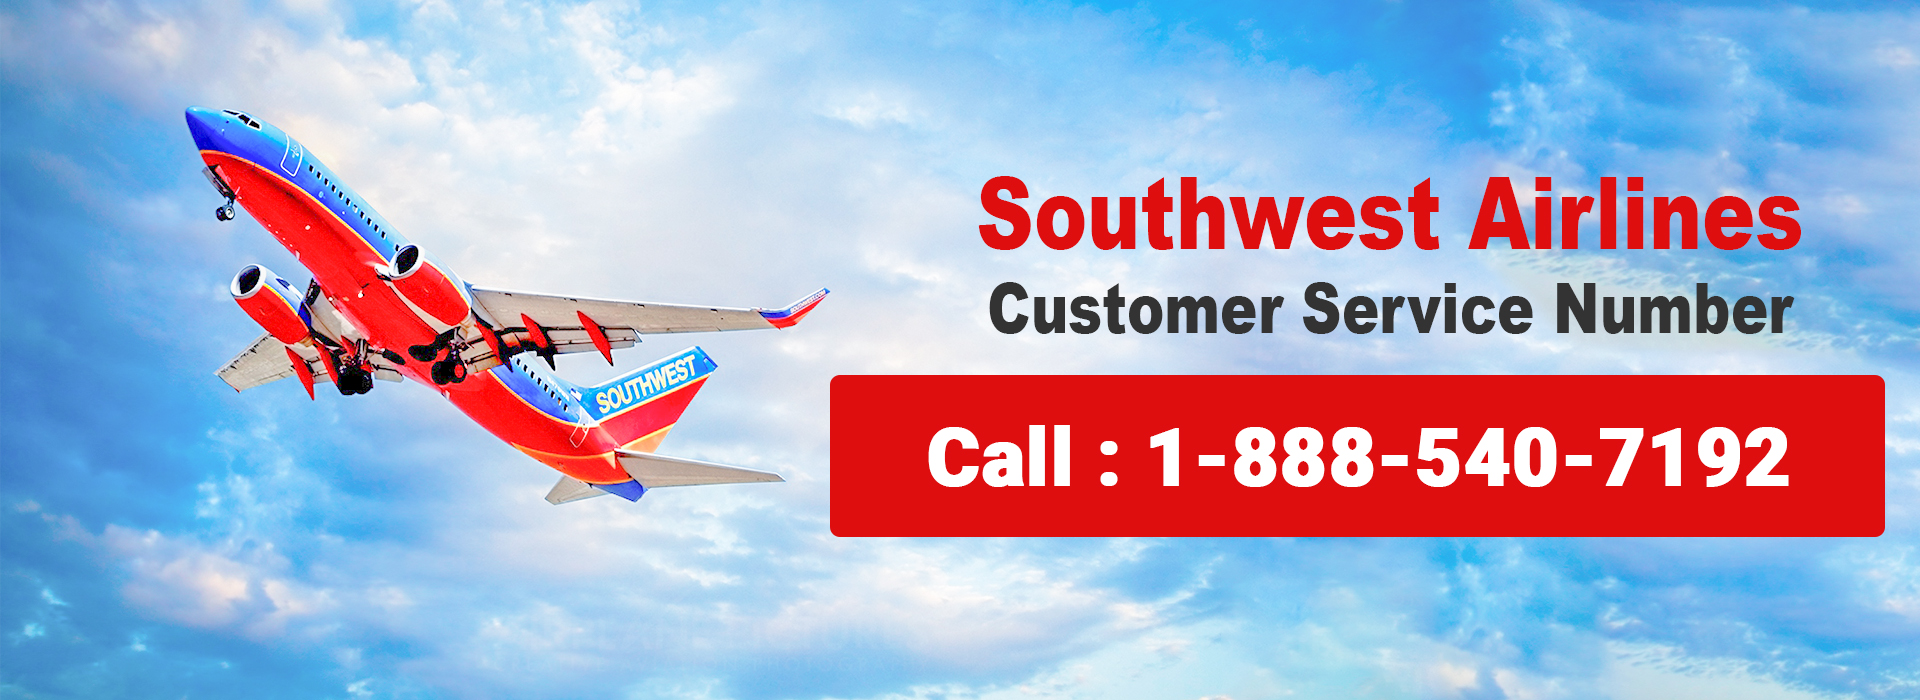 Southwest Airlines Customer Service 1-888-540-7192